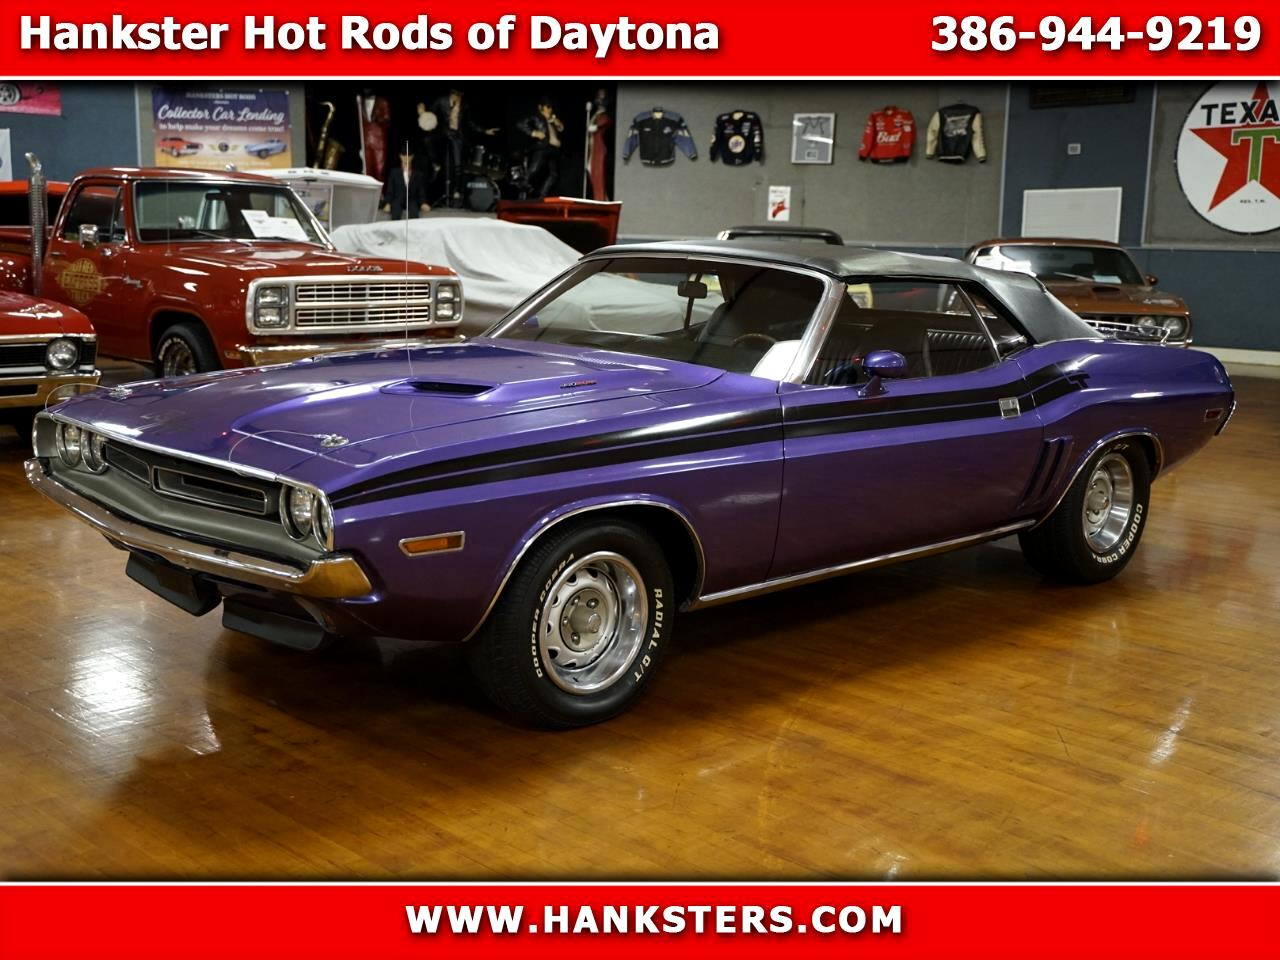 1971 Dodge Challenger R/T Style Convertible